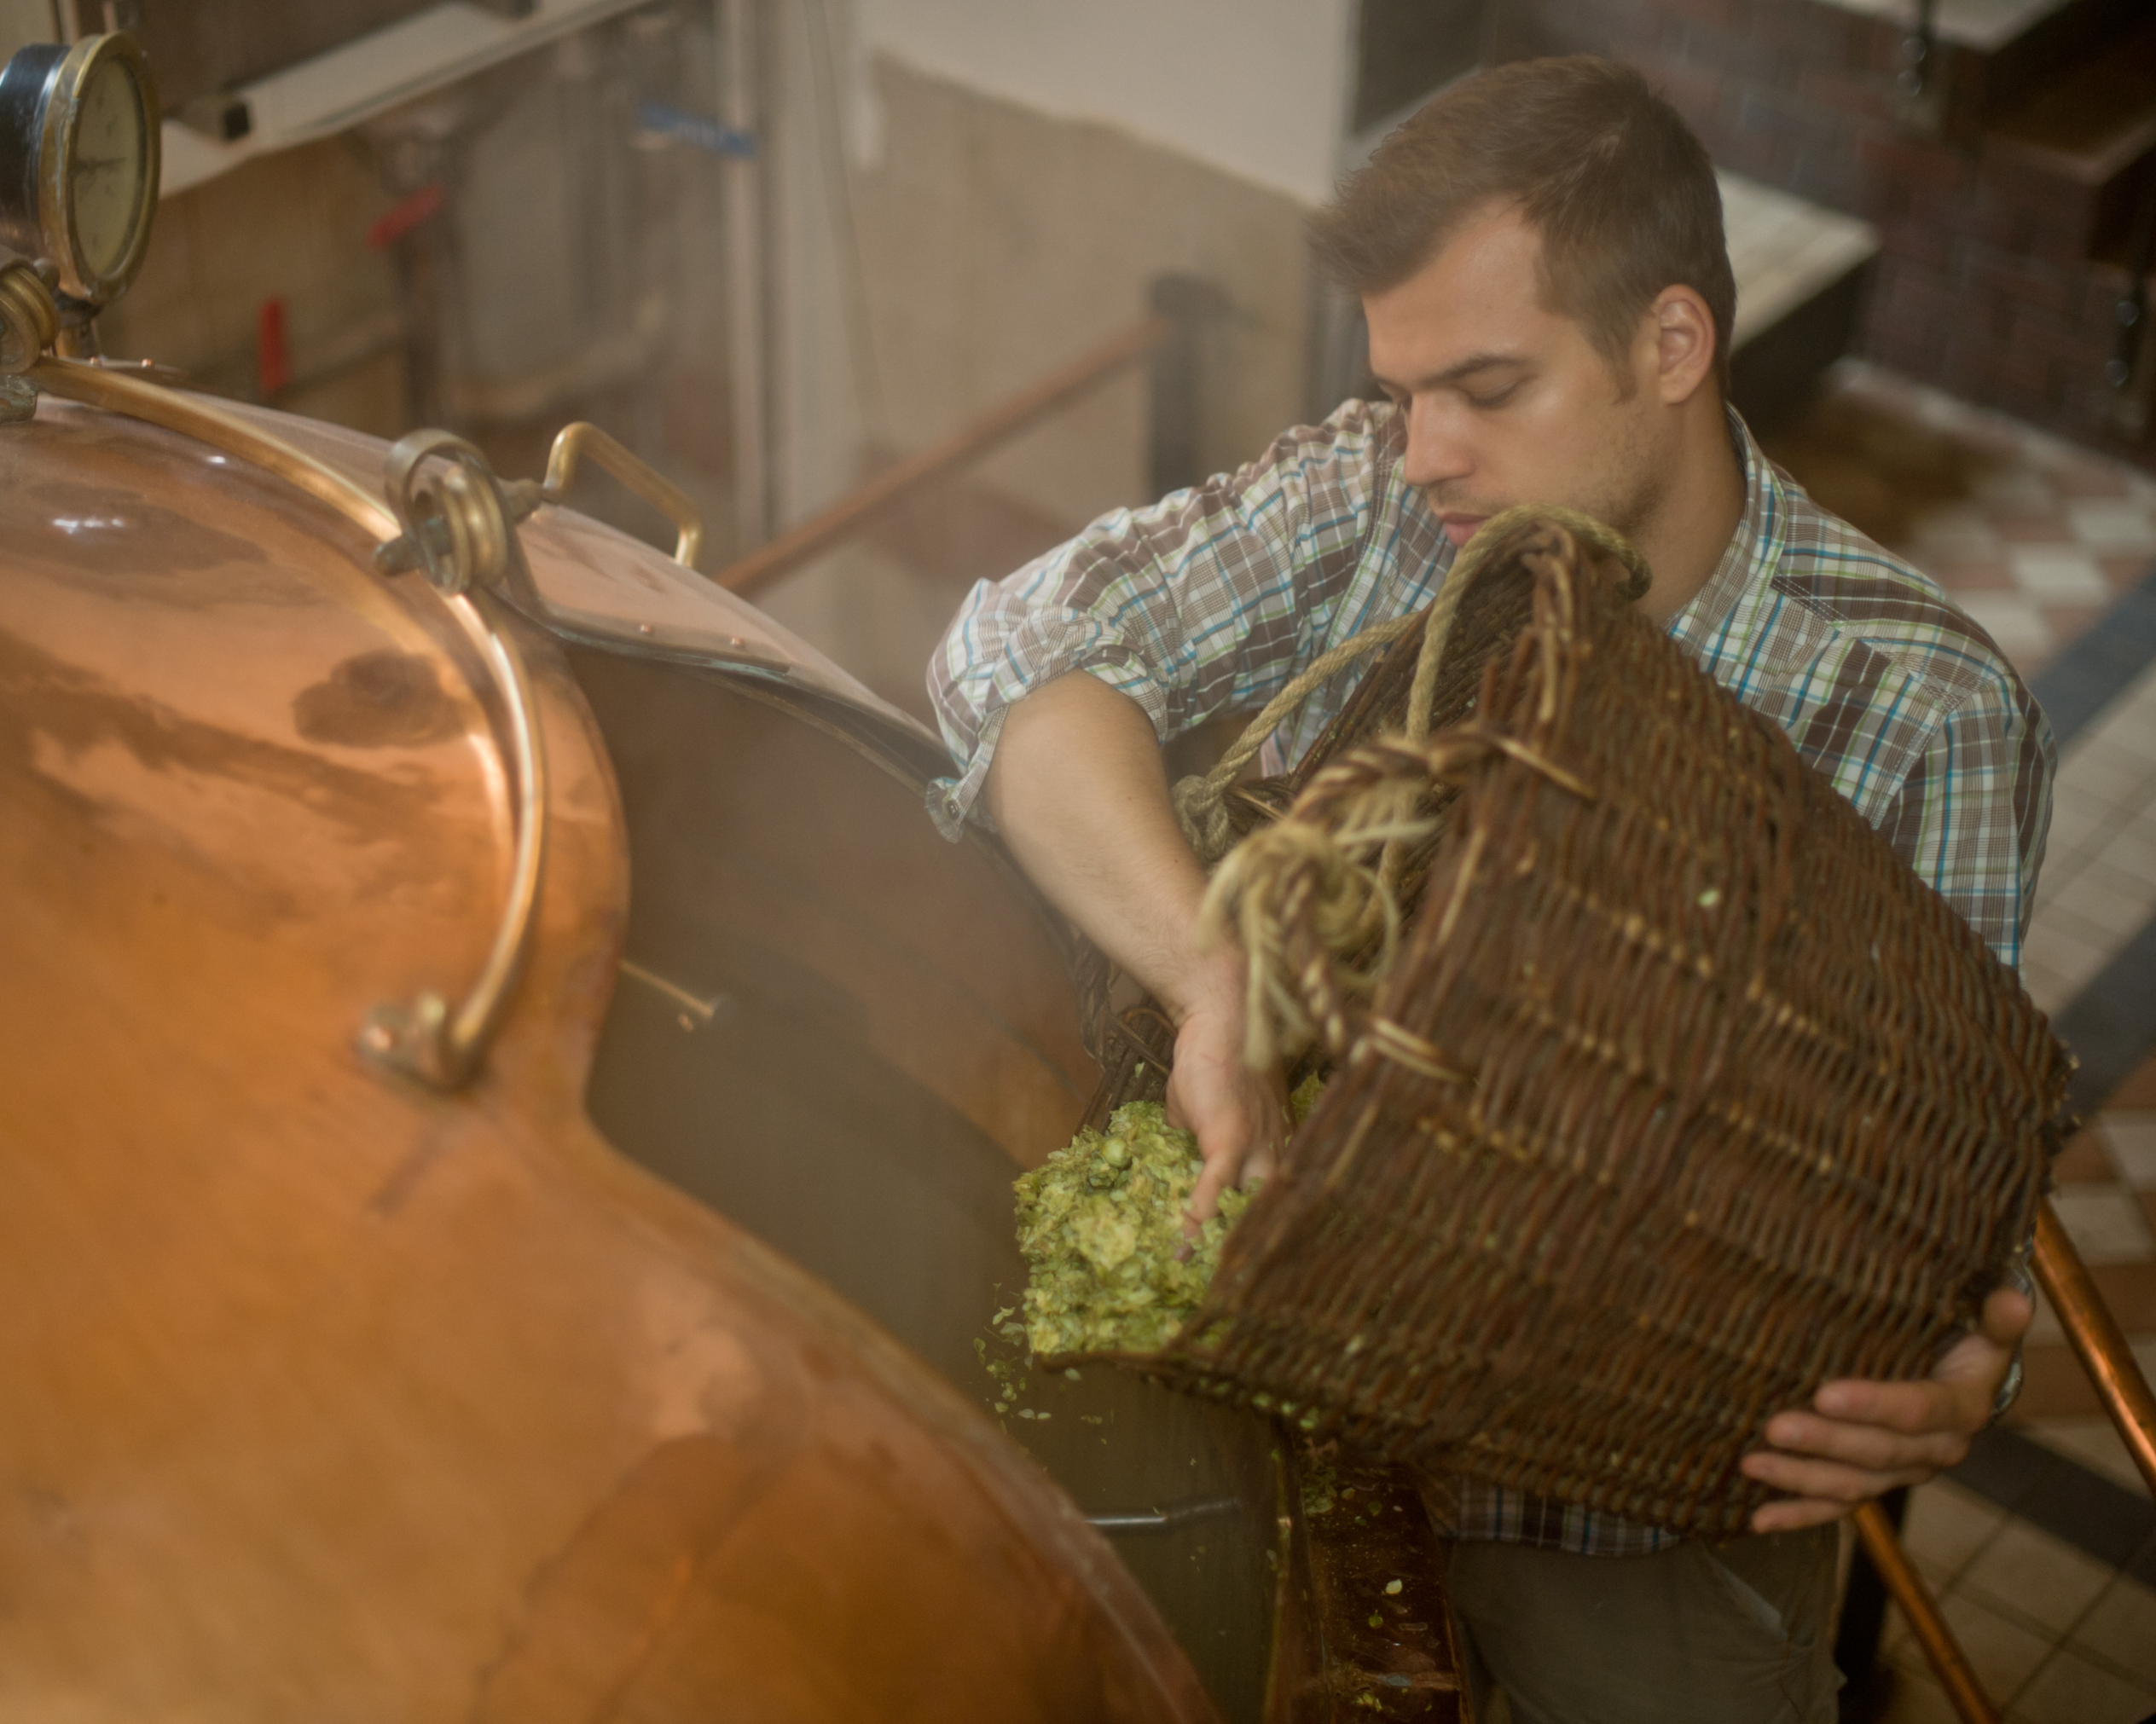 A brewer pours hop cones into a brewing kettle